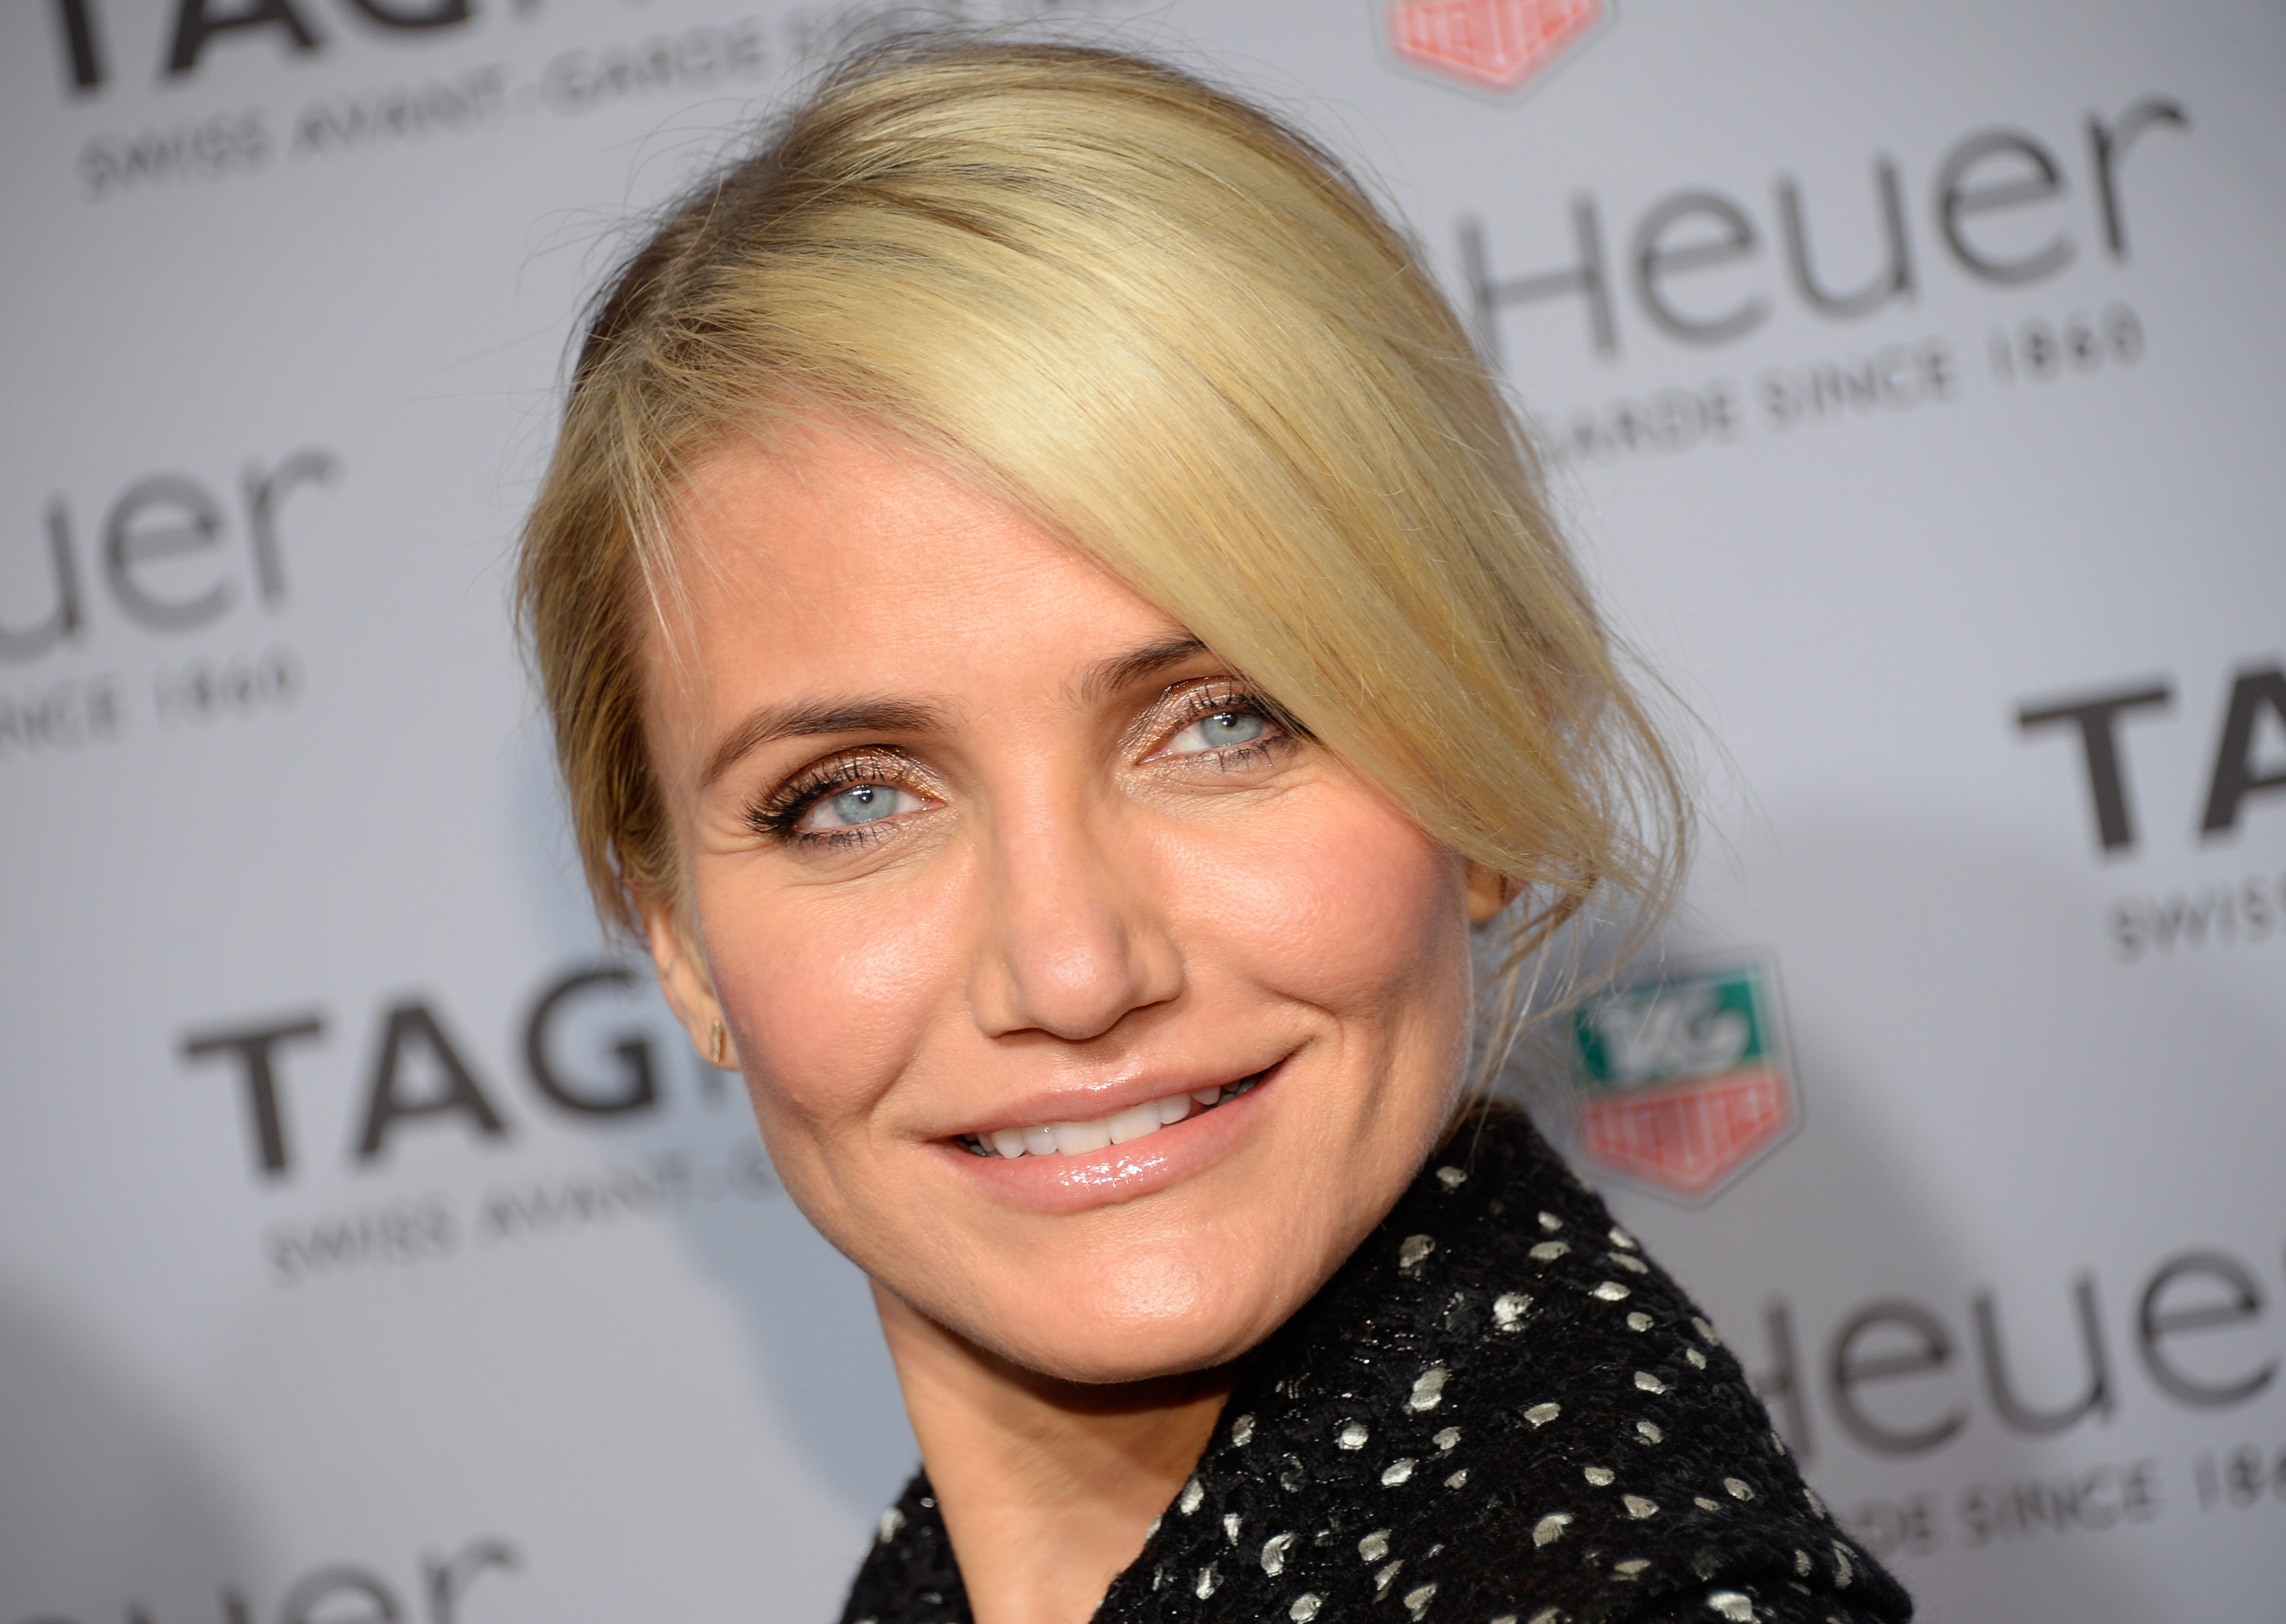 Cameron Diaz make-up over 40